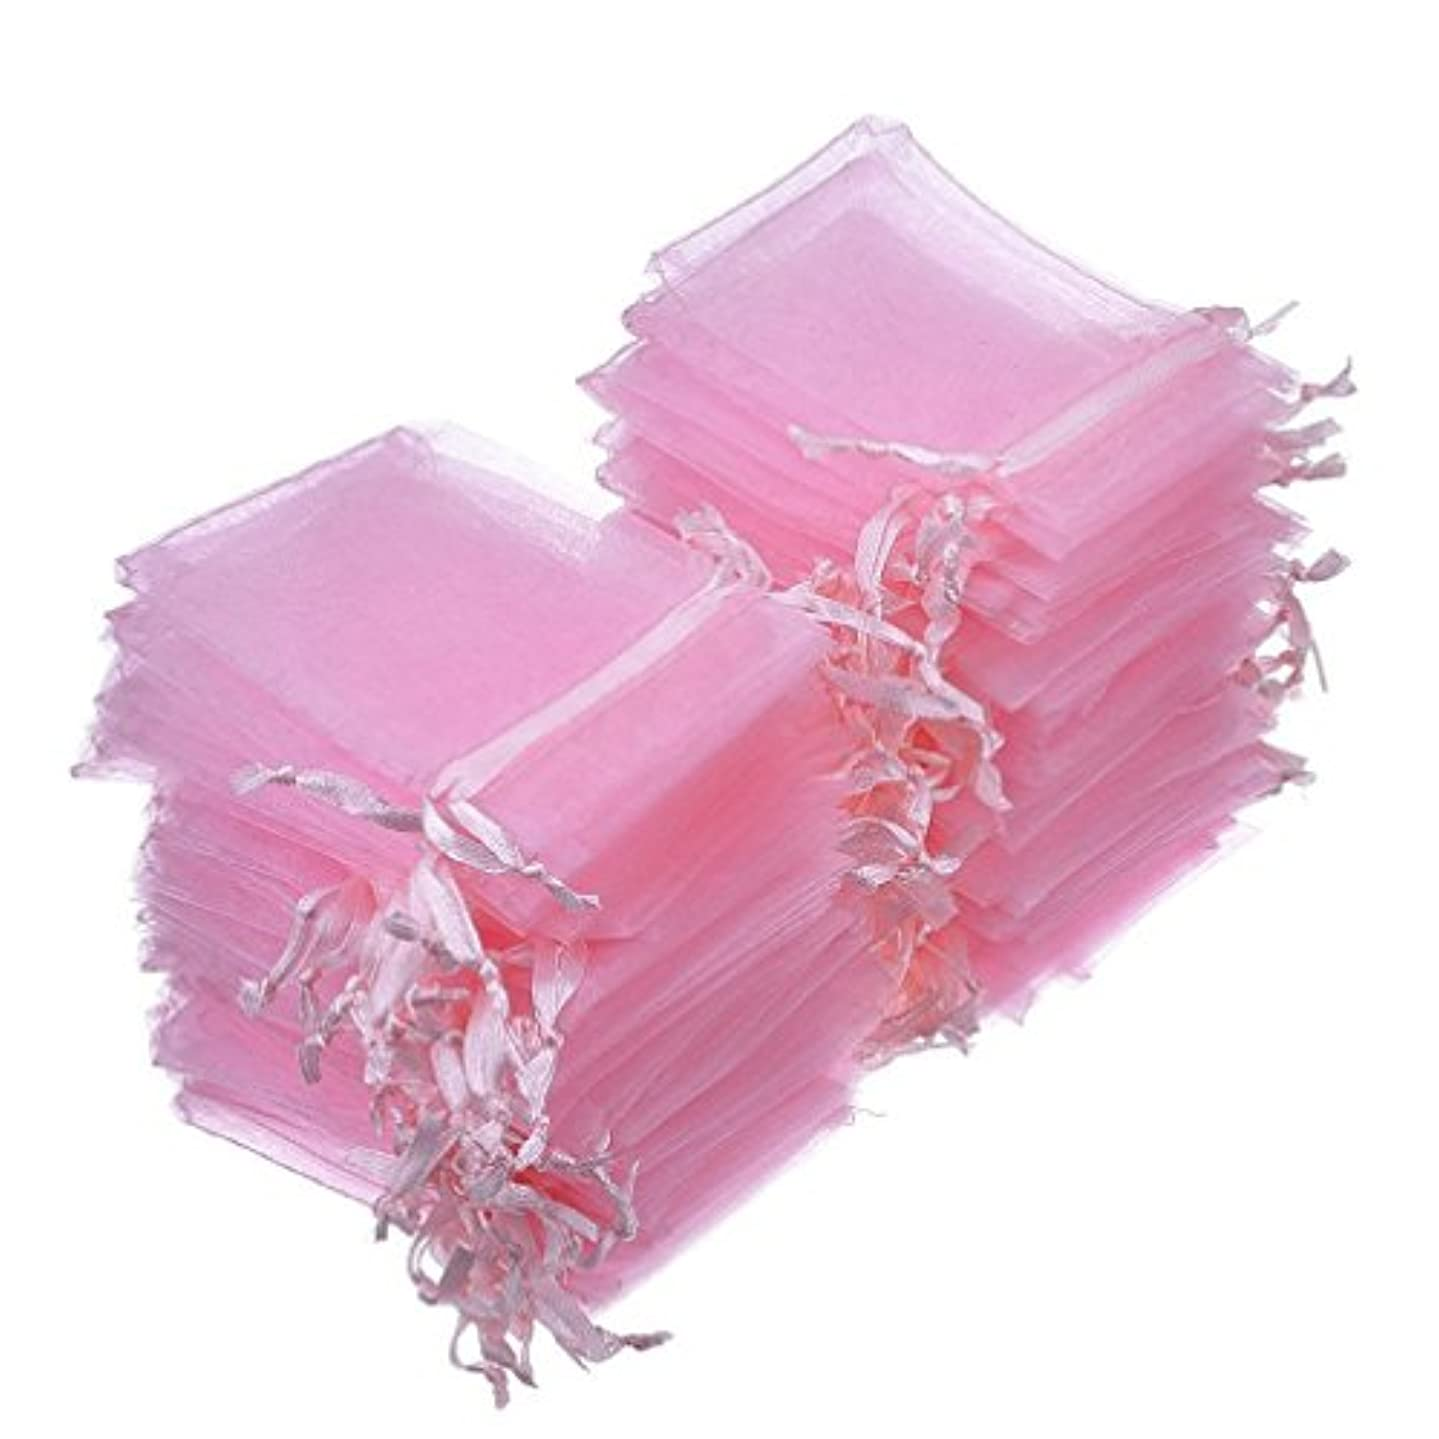 Dealglad 50pcs Drawstring Organza Jewelry Candy Pouch Christmas Wedding Party Favor Gift Bags (3x4, Pink)